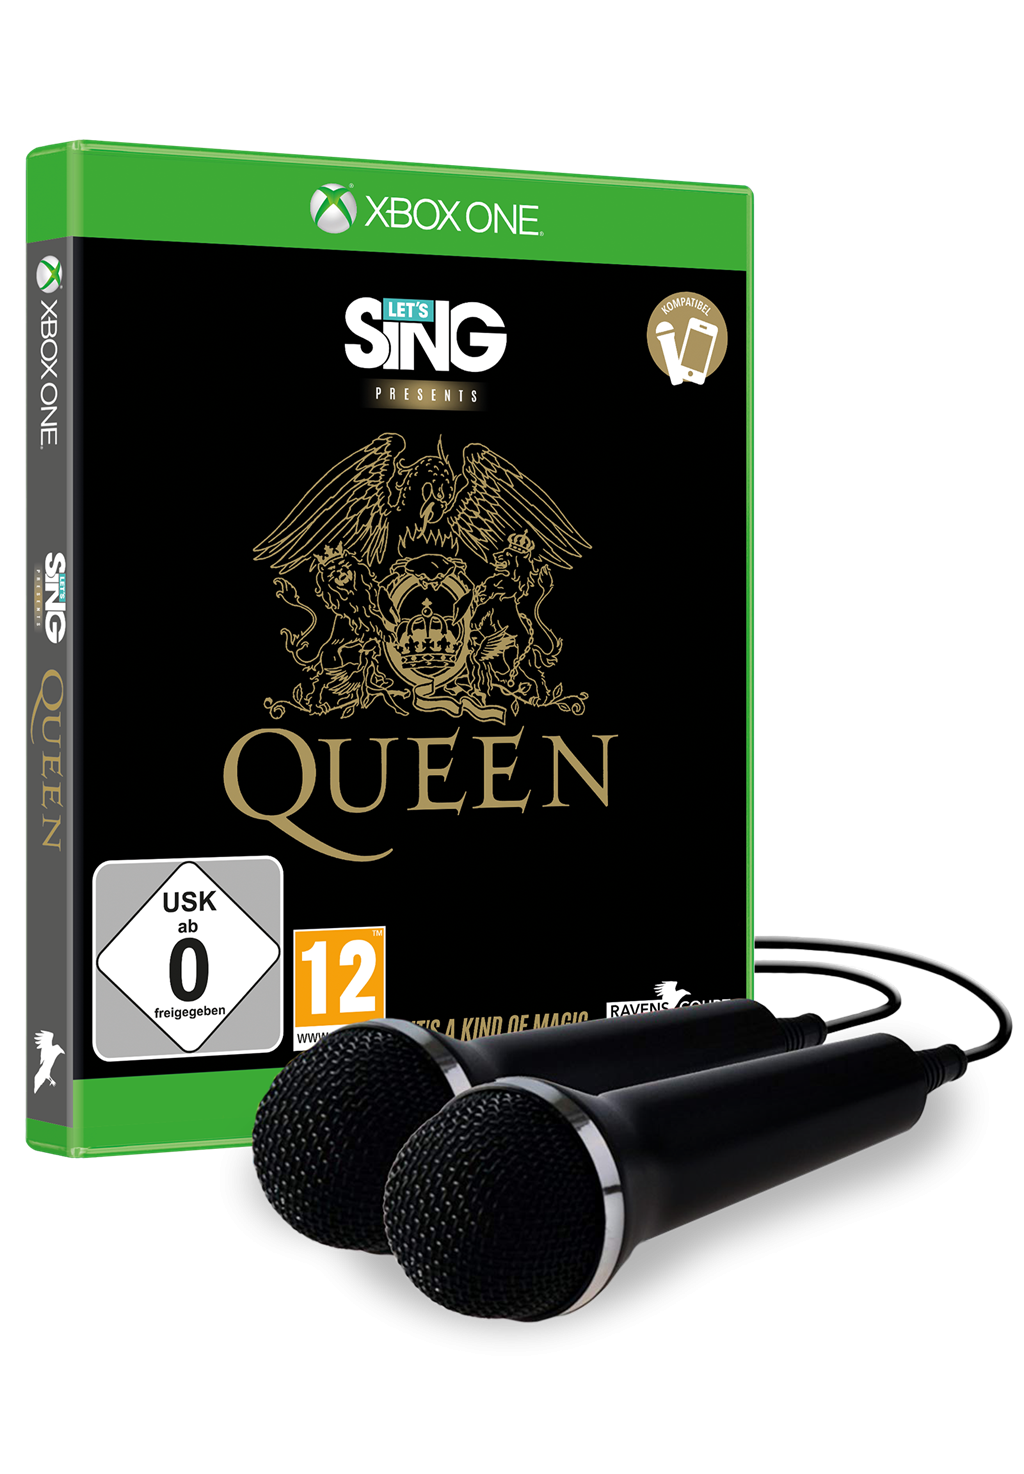 Xbox One Let's Sing Queen